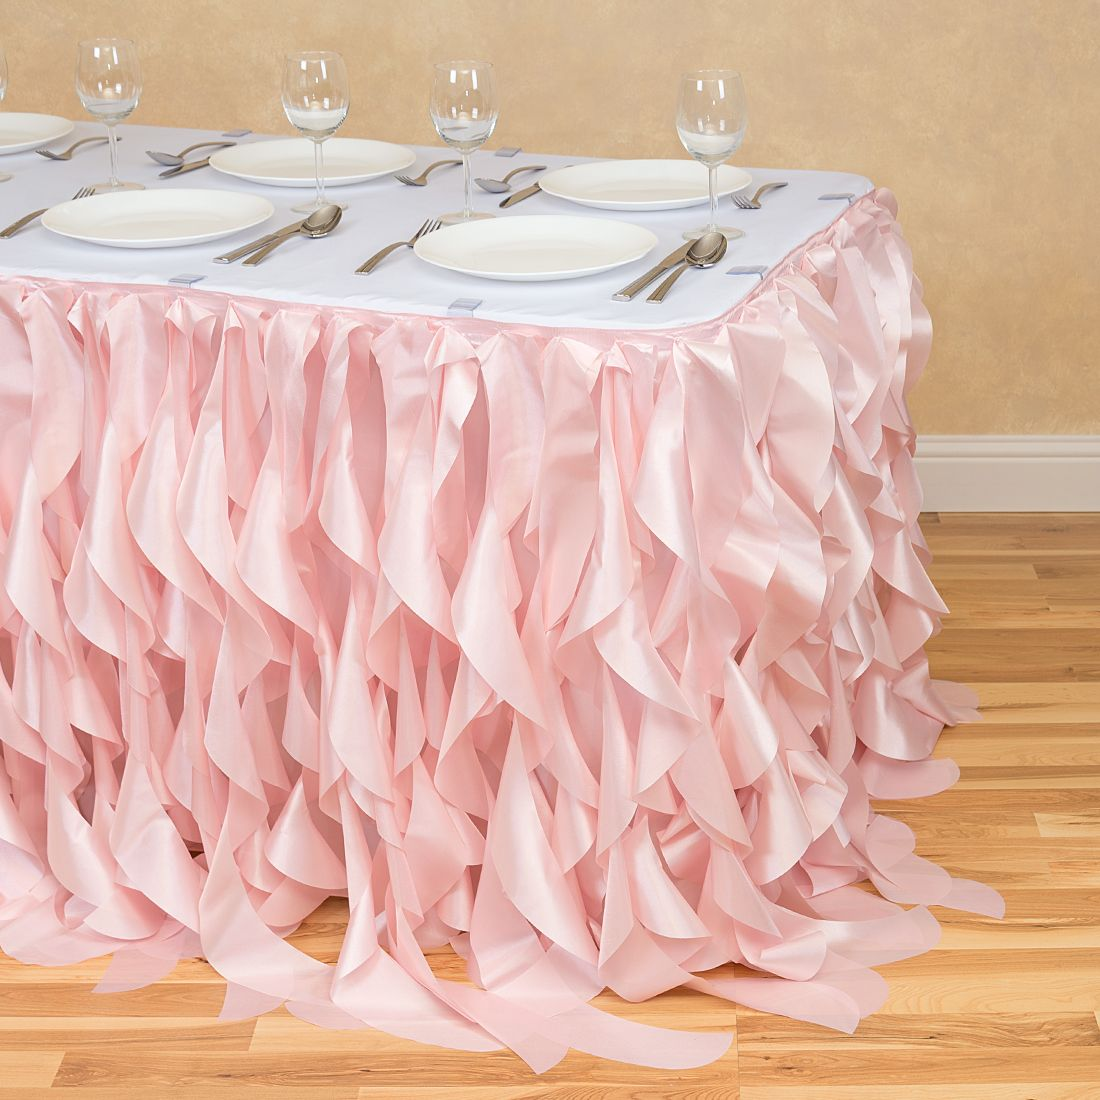 tulle rose table skirt blush pink curly willow light main round accent skirts lamp wedding linens whole target threshold granite coffee baby bedding teak patio furniture lucite